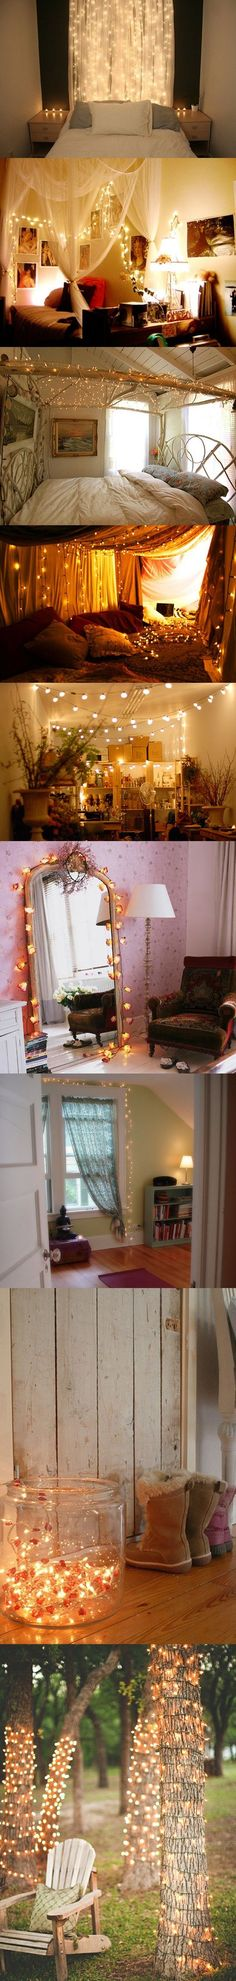 Fairy Lights Decorating Ideas @ DIY Home Design - lots of ideas for using string lights to create atmosphere. I'm in love with fairy lights